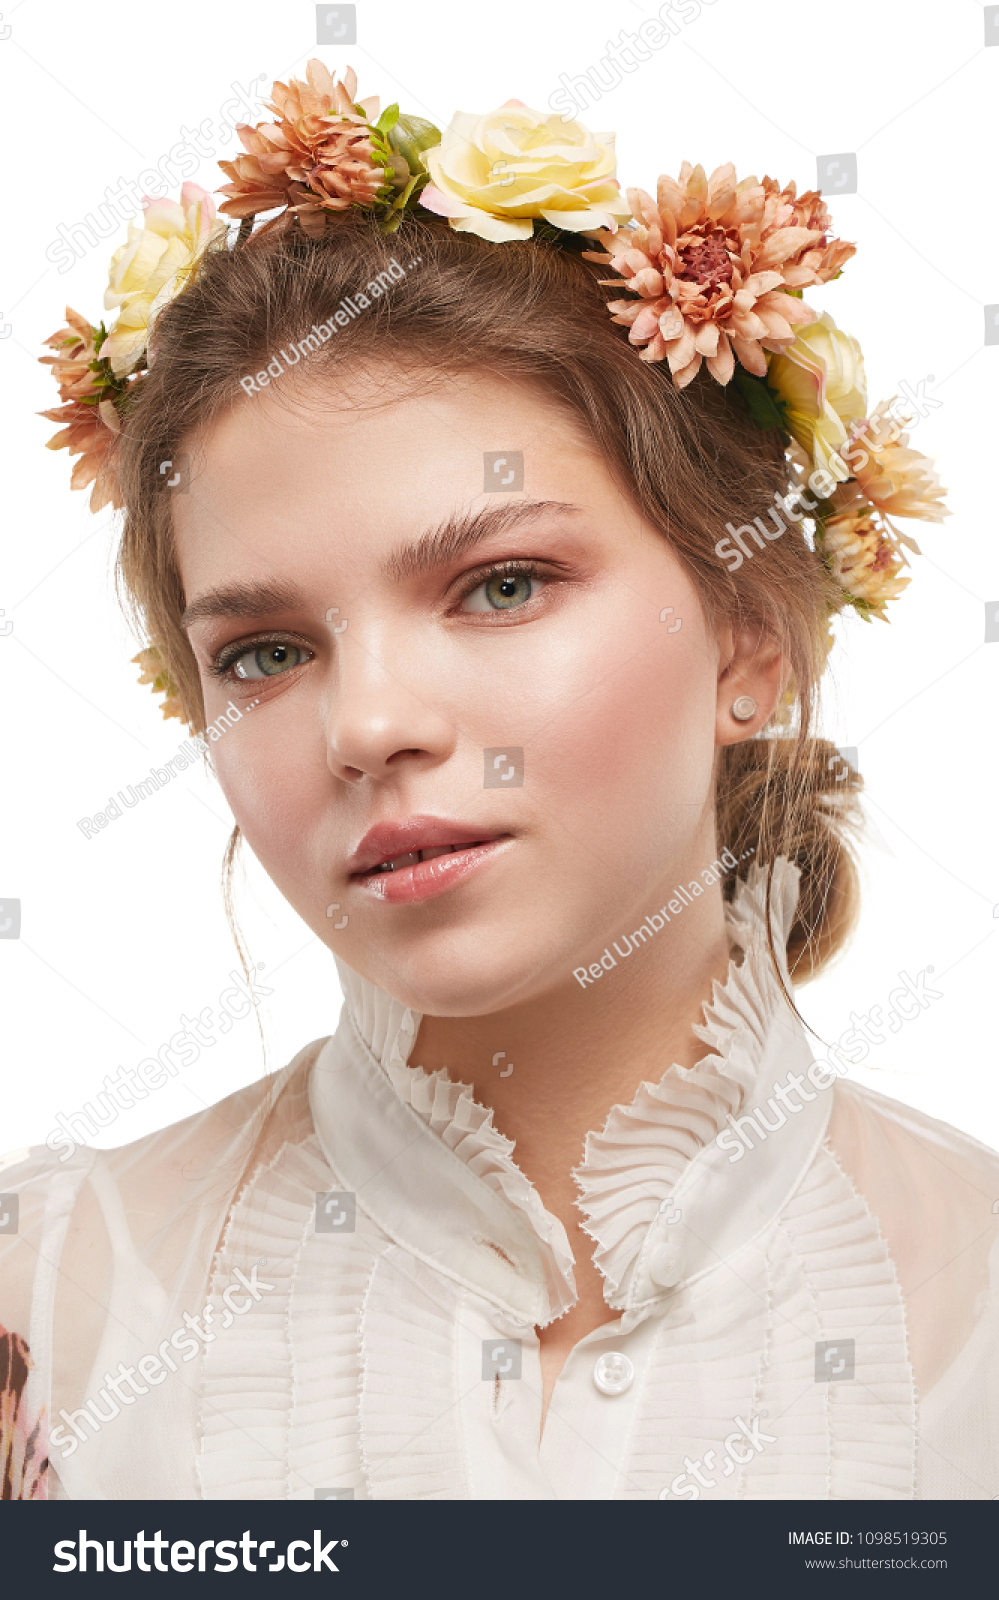 Portrait young lady bohemian flower crown stock photo edit now portrait of a young lady with a bohemian flower crown in a white blouse izmirmasajfo